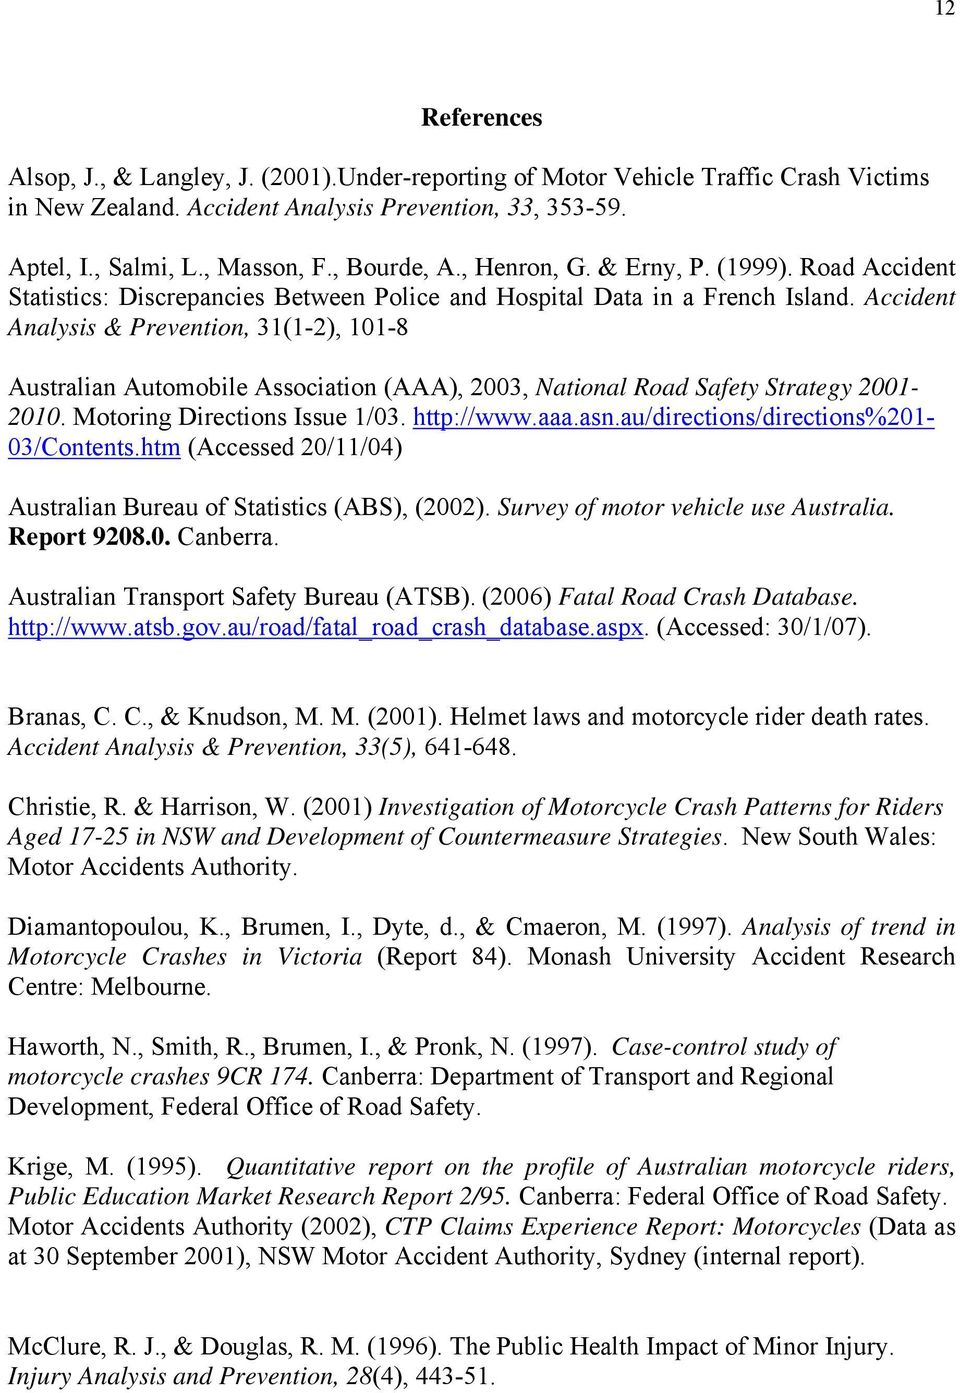 Accident Analysis & Prevention, 31(1-2), 101-8 Australian Automobile Association (AAA), 2003, National Road Safety Strategy 2001-2010. Motoring Directions Issue 1/03. http://www.aaa.asn.